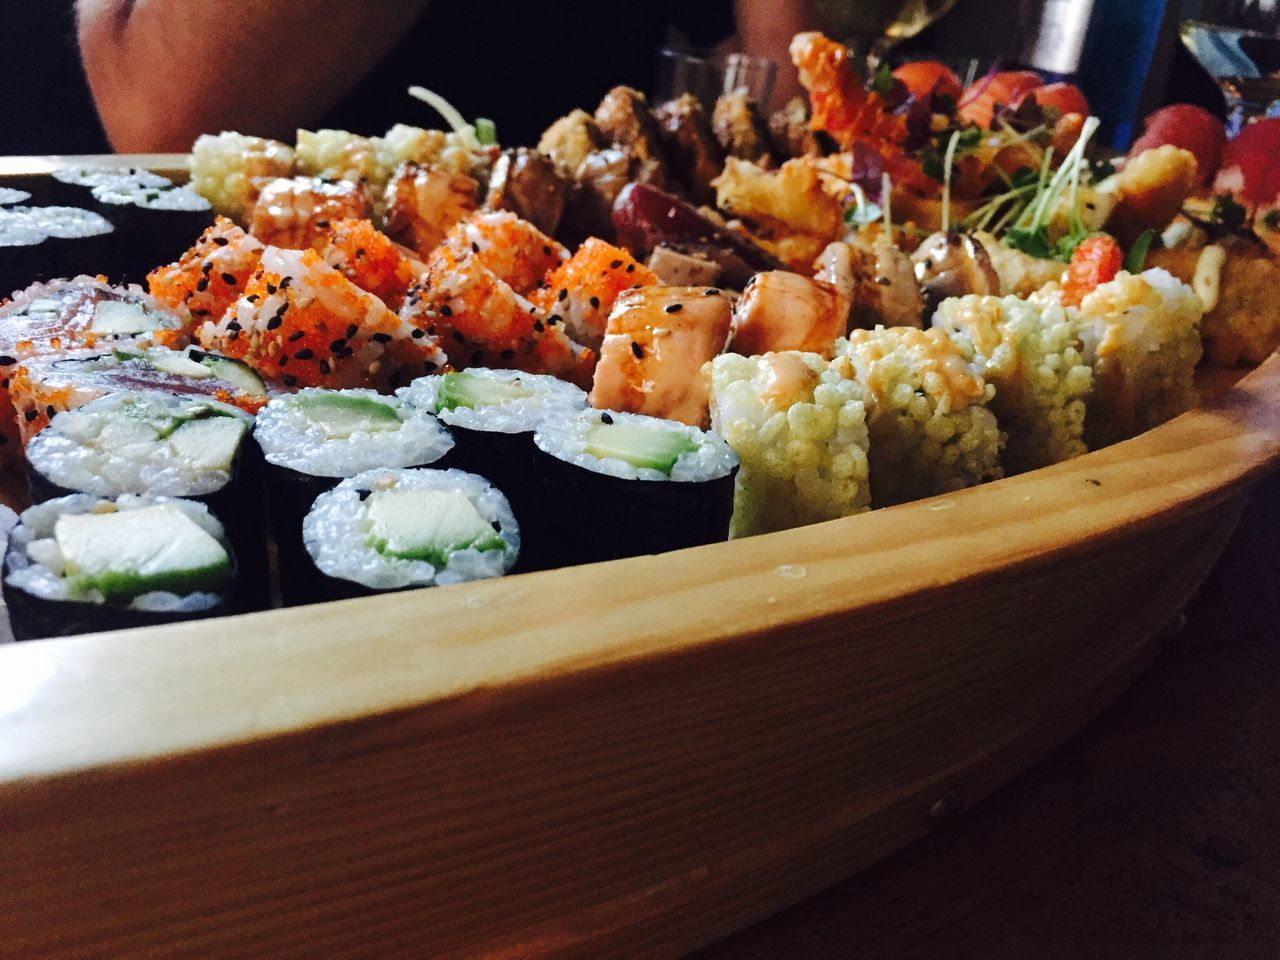 Close-Up Of Food In Wooden Container On Table